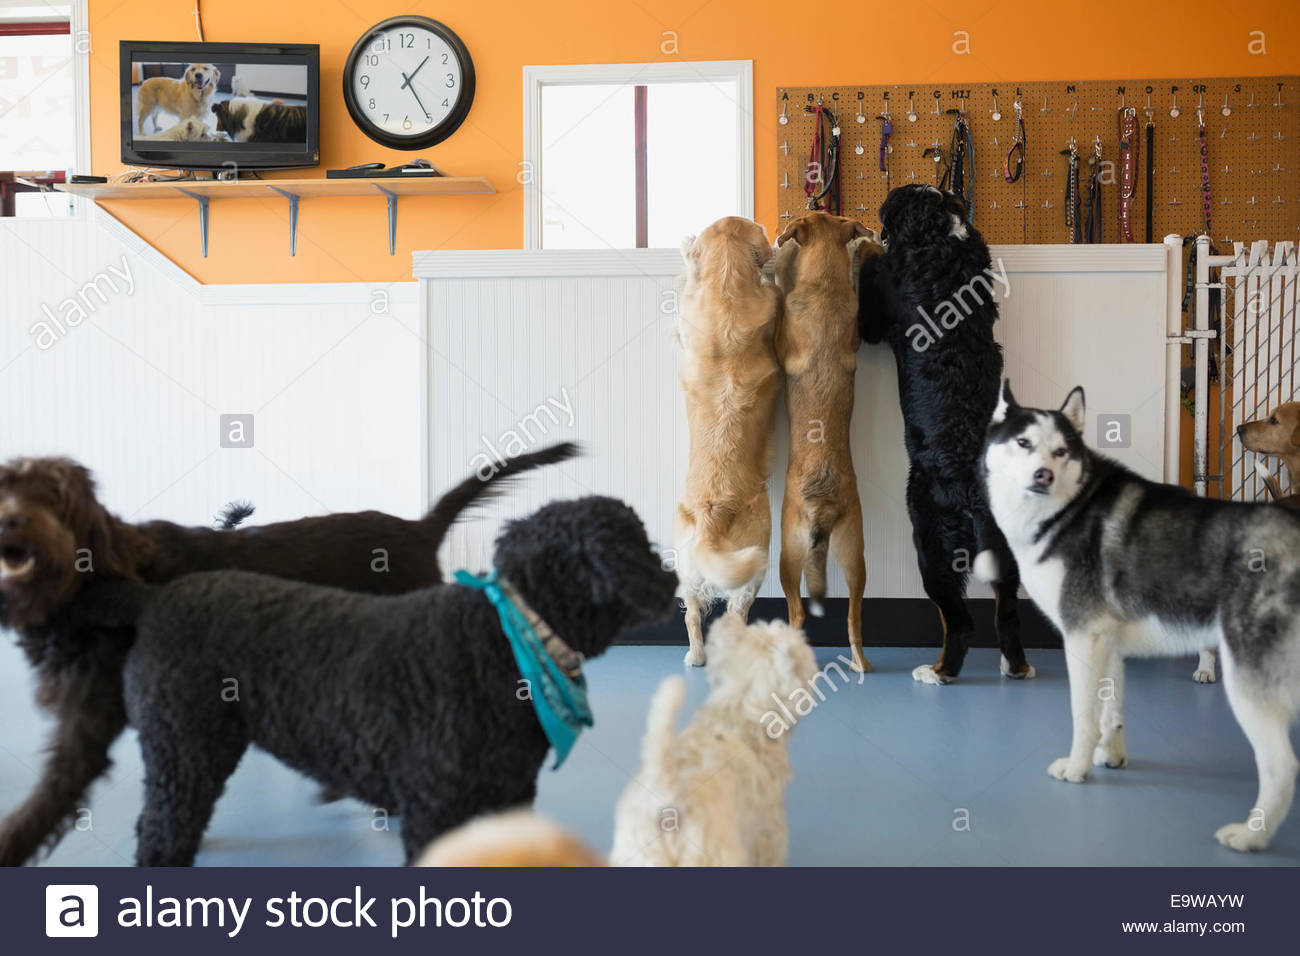 Dogs playing in dog daycare - Stock Image